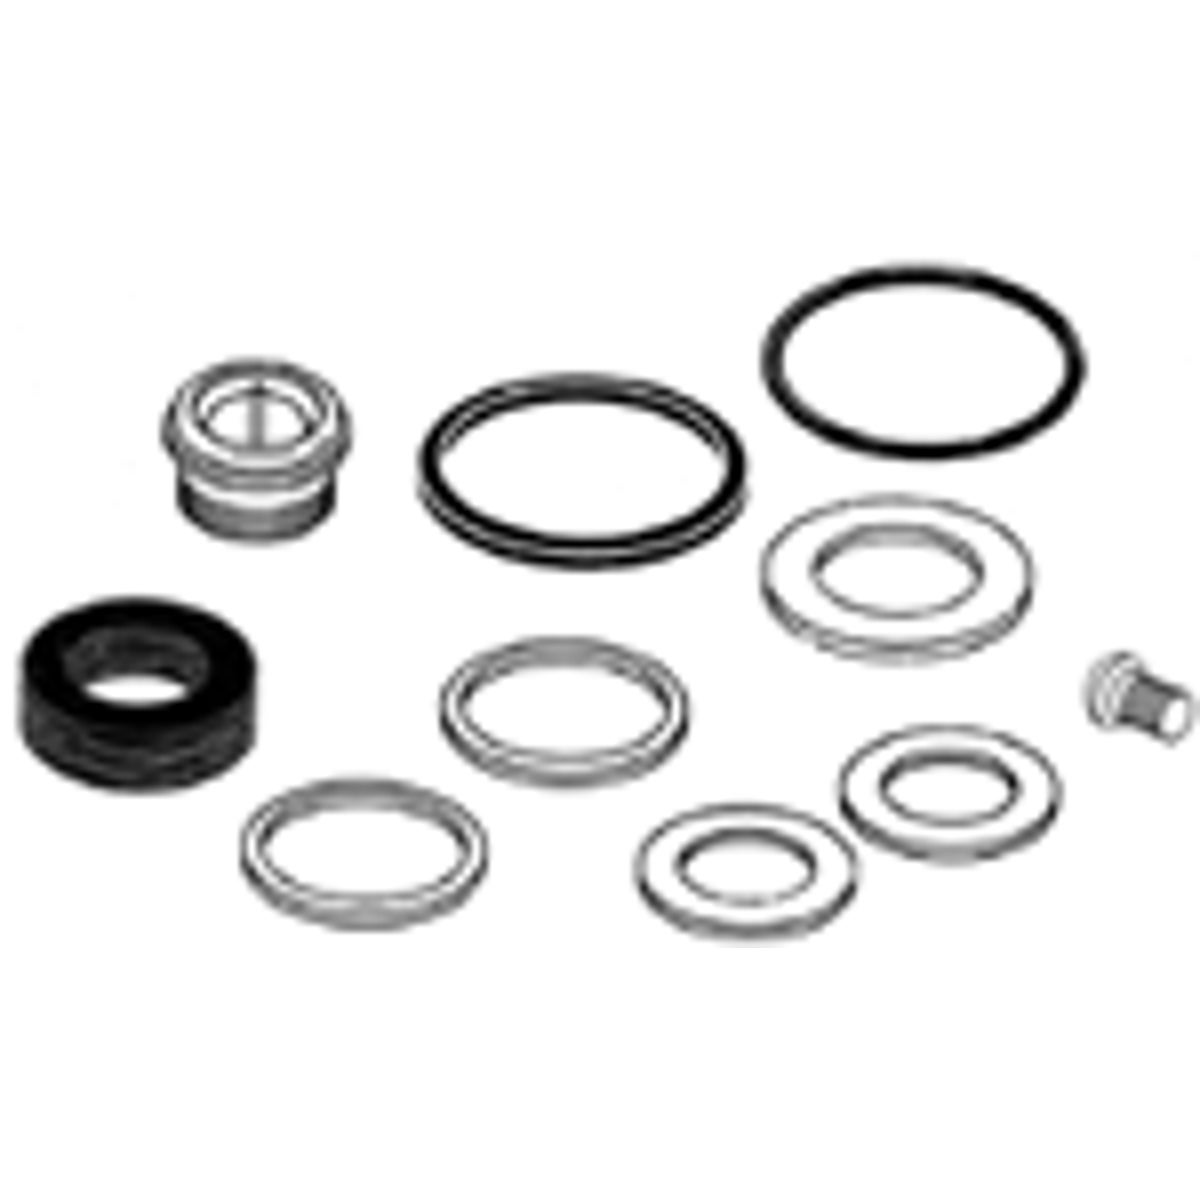 AMER STND REPAIR KIT - 24104 by Danco Perfect Match